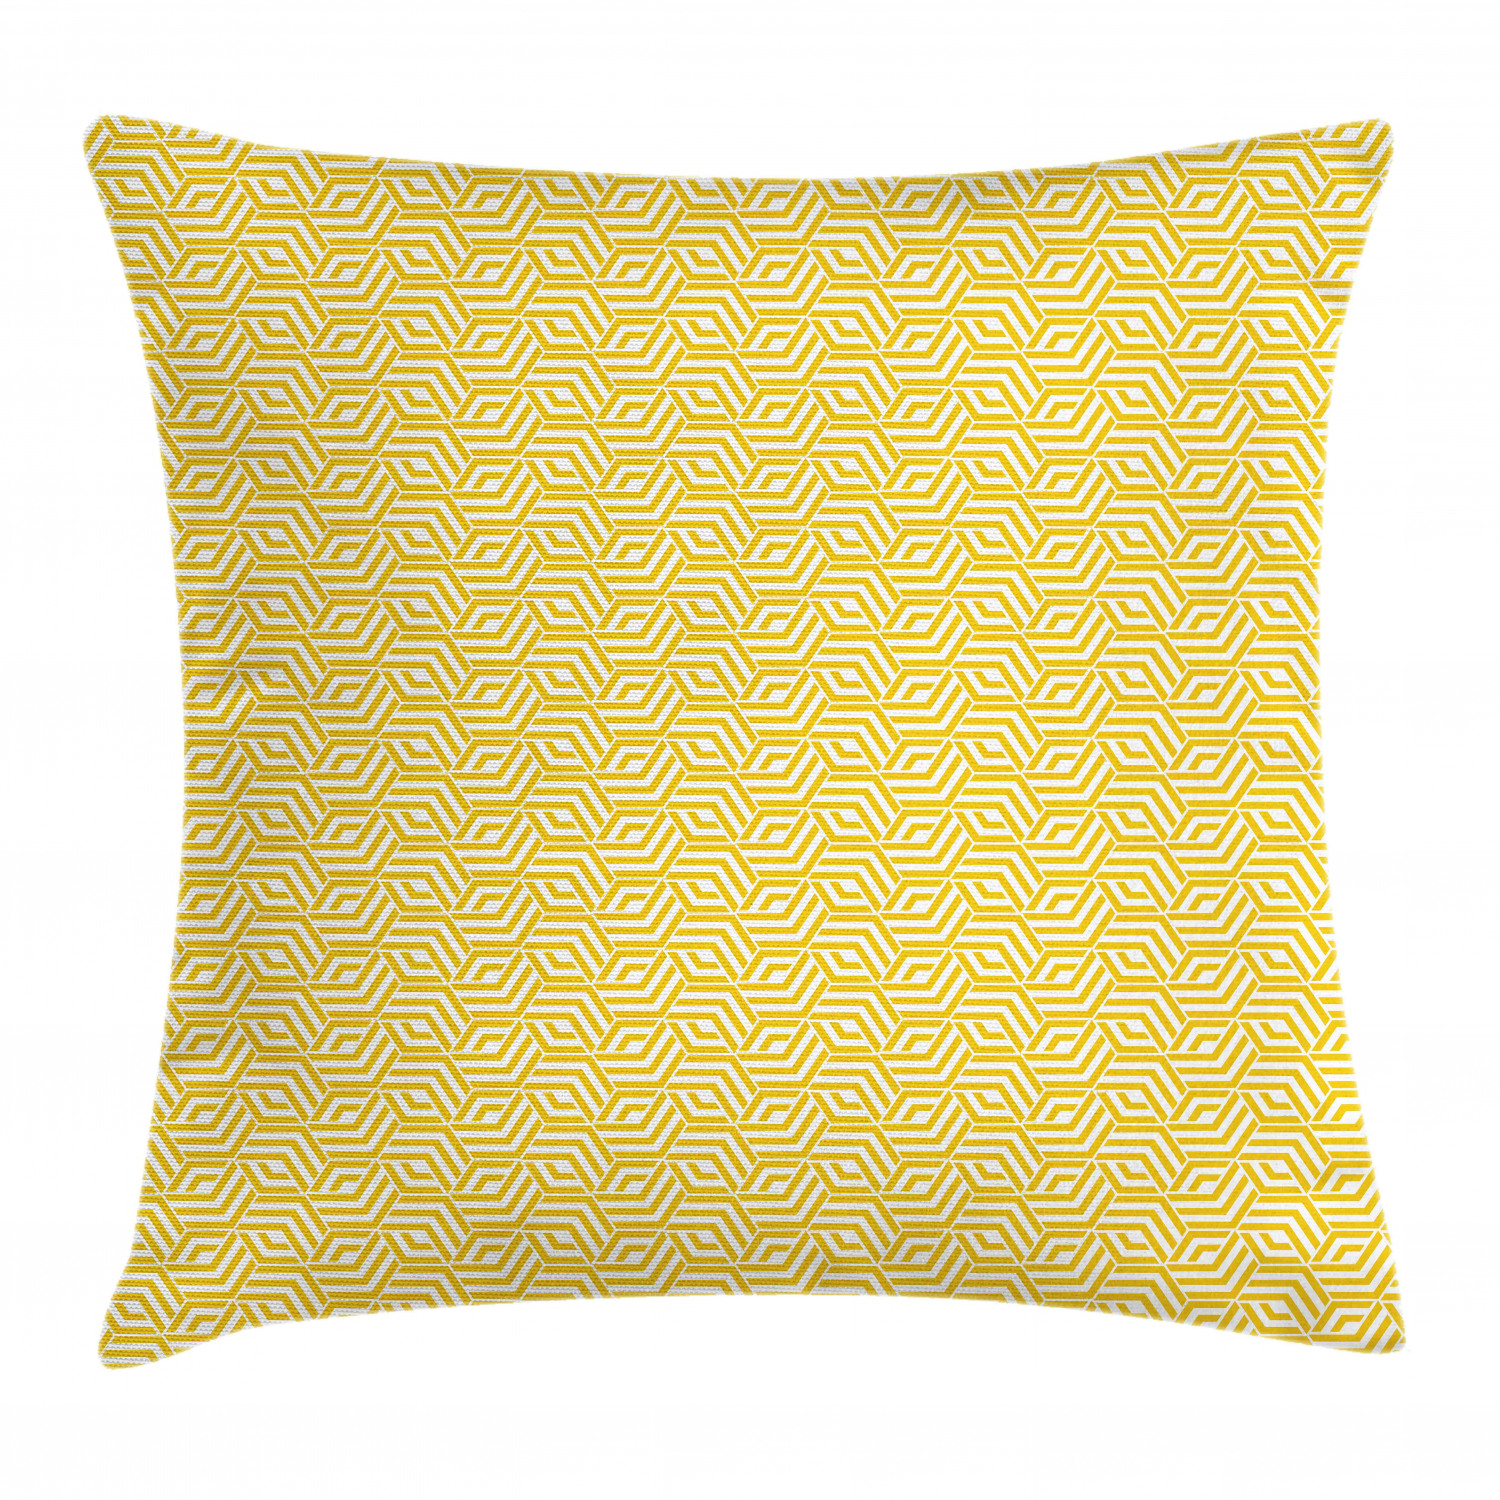 Lattice Throw Pillow Cushion Cover Hexagon Shapes With Yellow Chevron Lines Simple Graphic Tiling Composition Decorative Square Accent Pillow Case 24 X 24 Yellow And White By Ambesonne Walmart Com Walmart Com